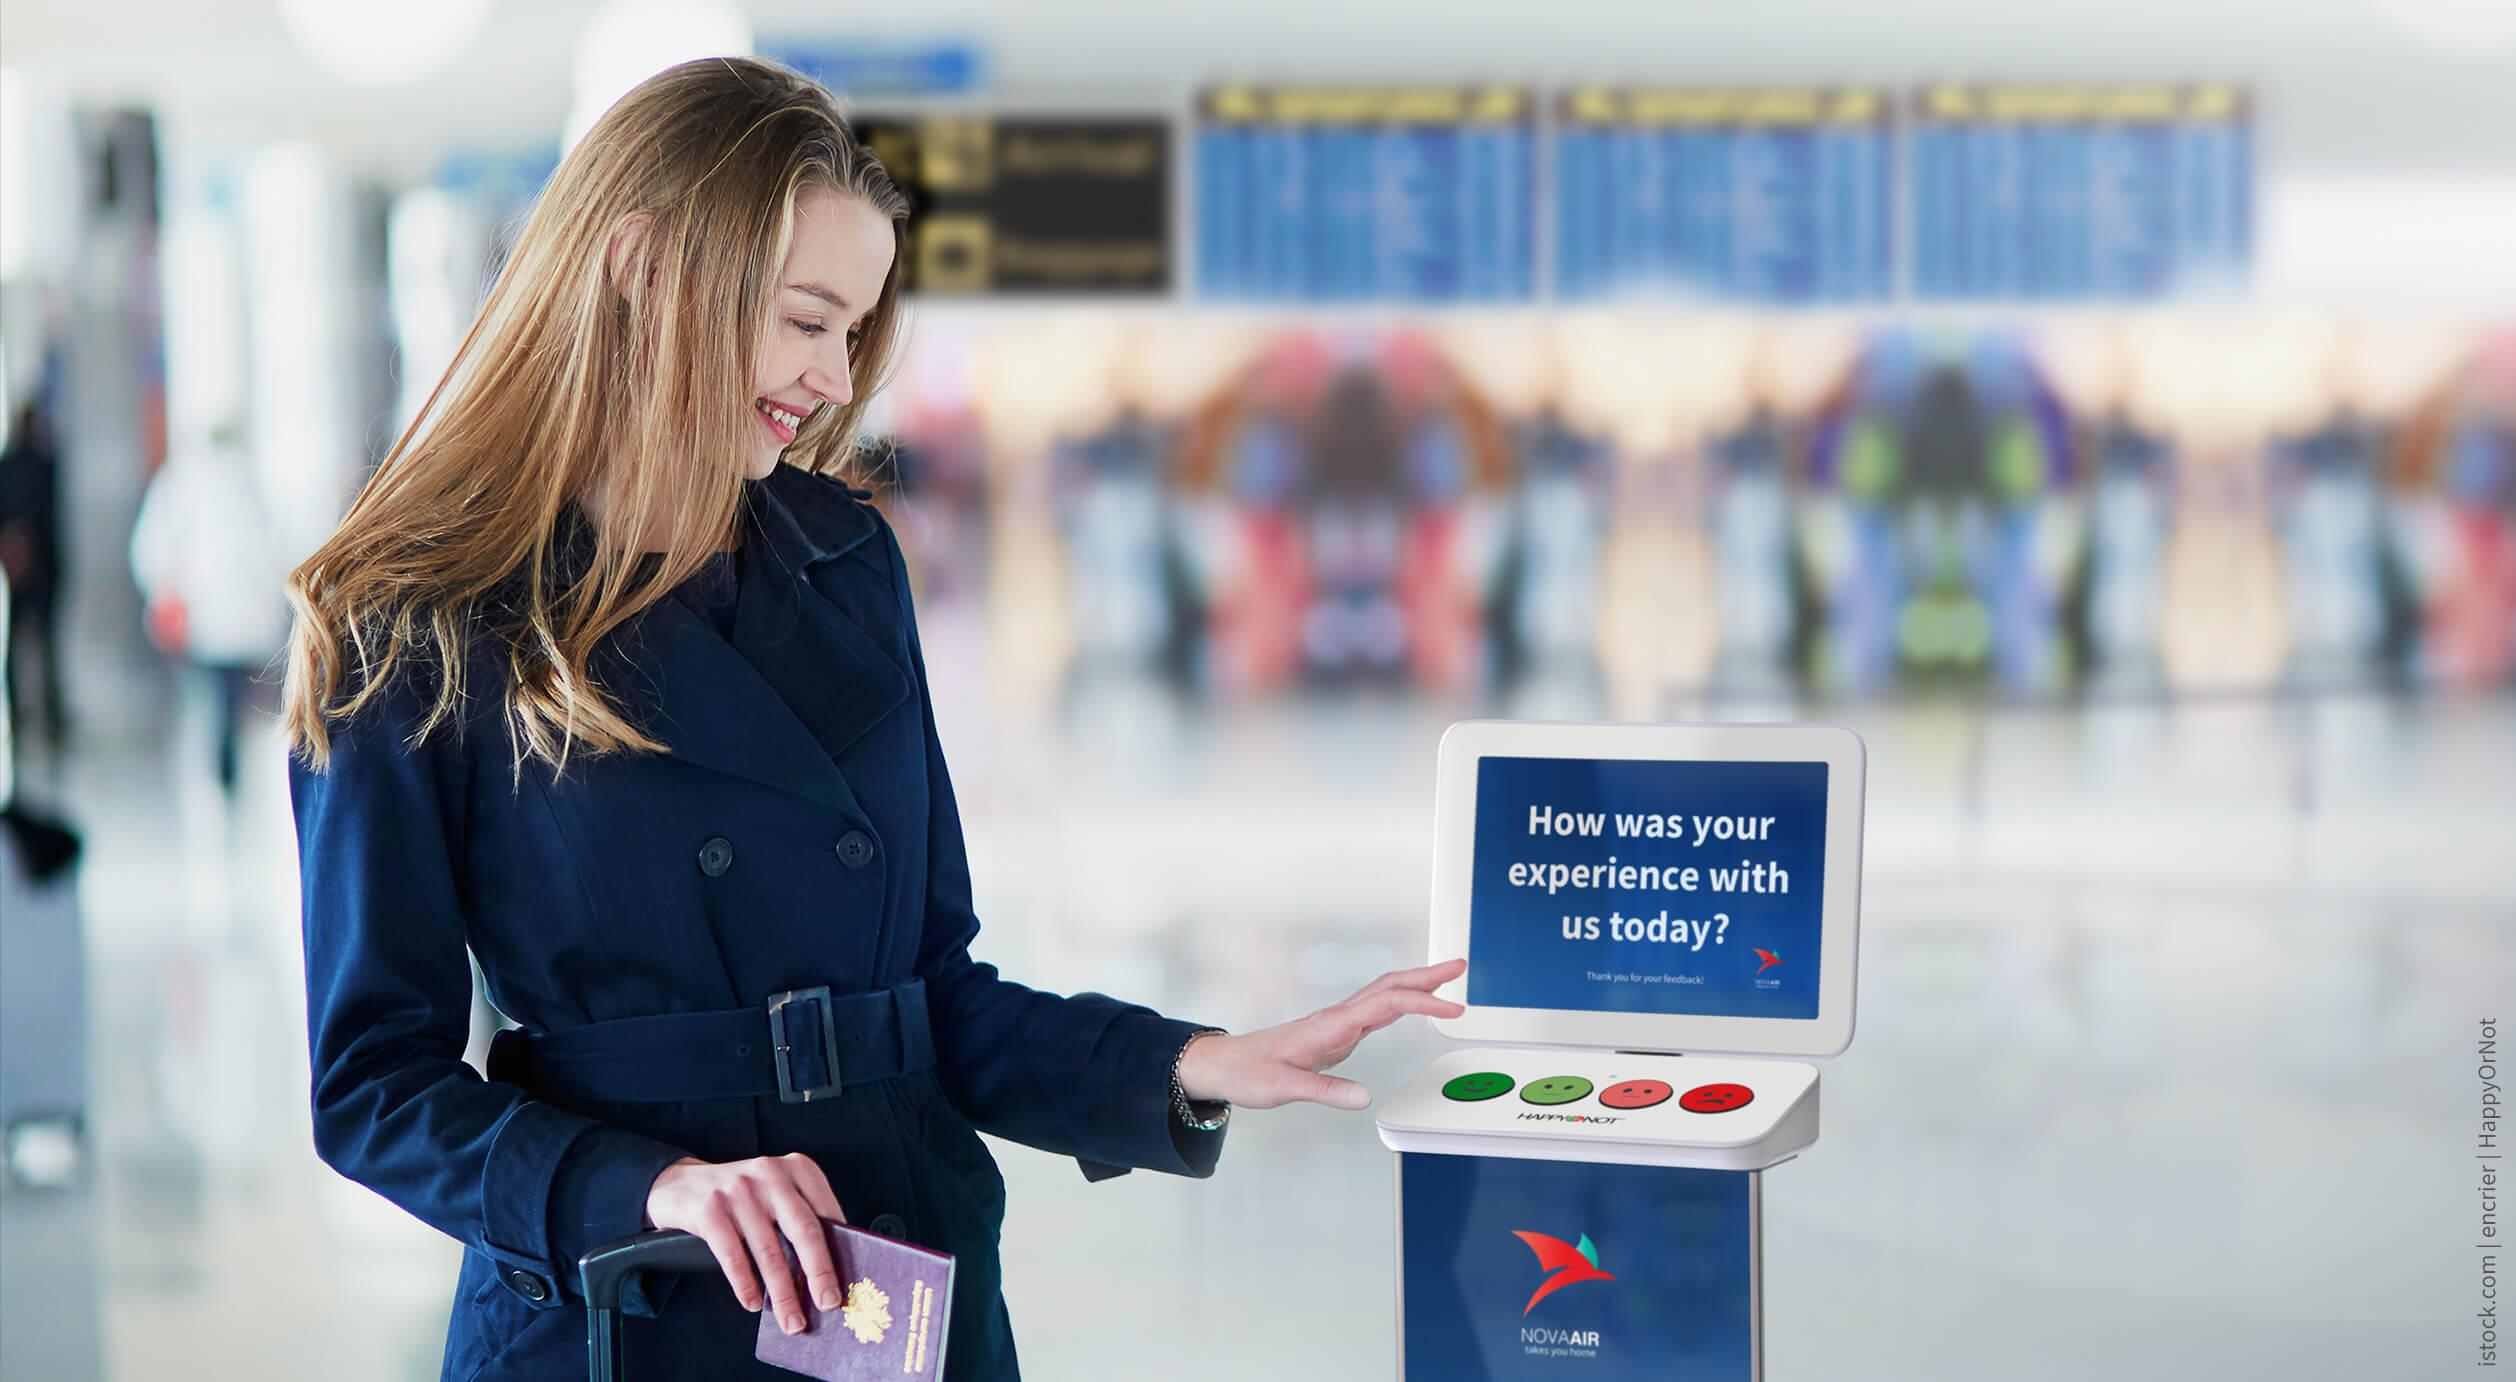 How a Smiley face will help improve the customer experience in a first for an Australian airport